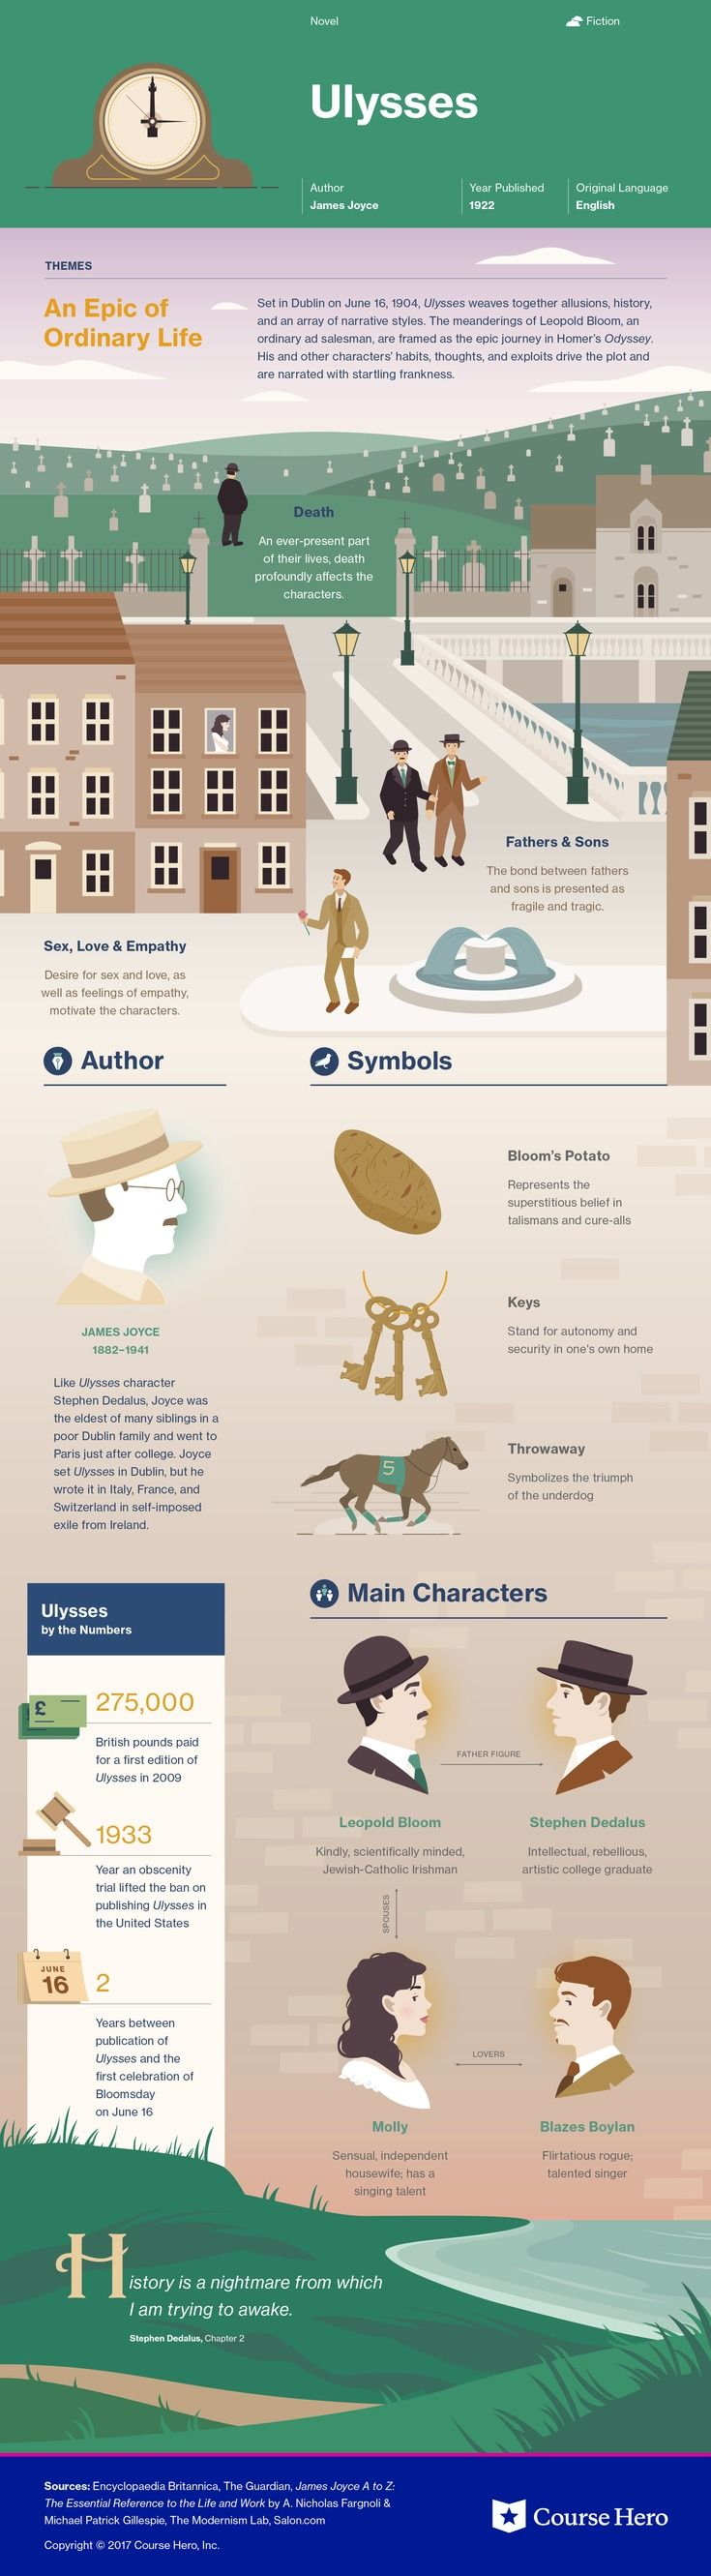 This @CourseHero infographic on Ulysses is both visually stunning and informative!